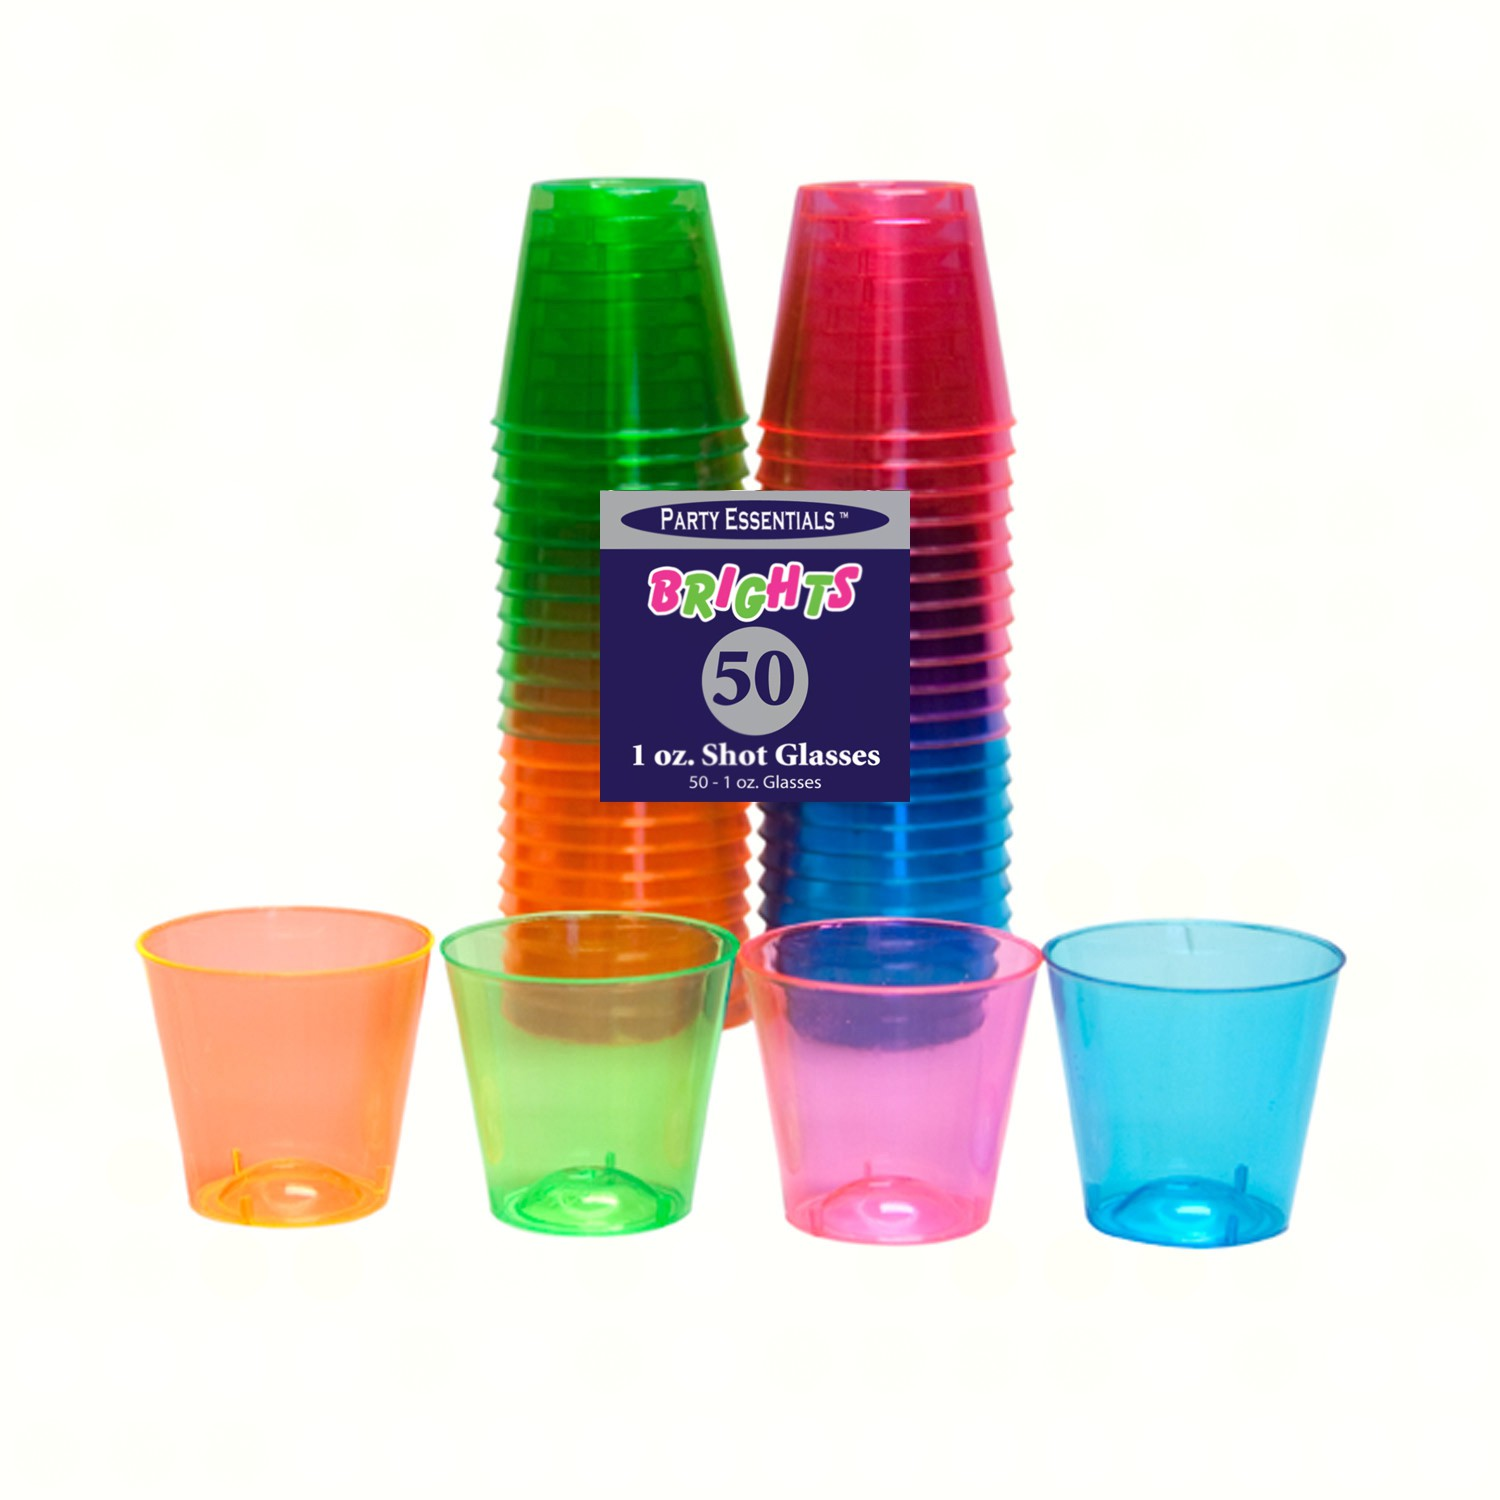 1 oz Shot Glasses. Assorted Neon 50 ct